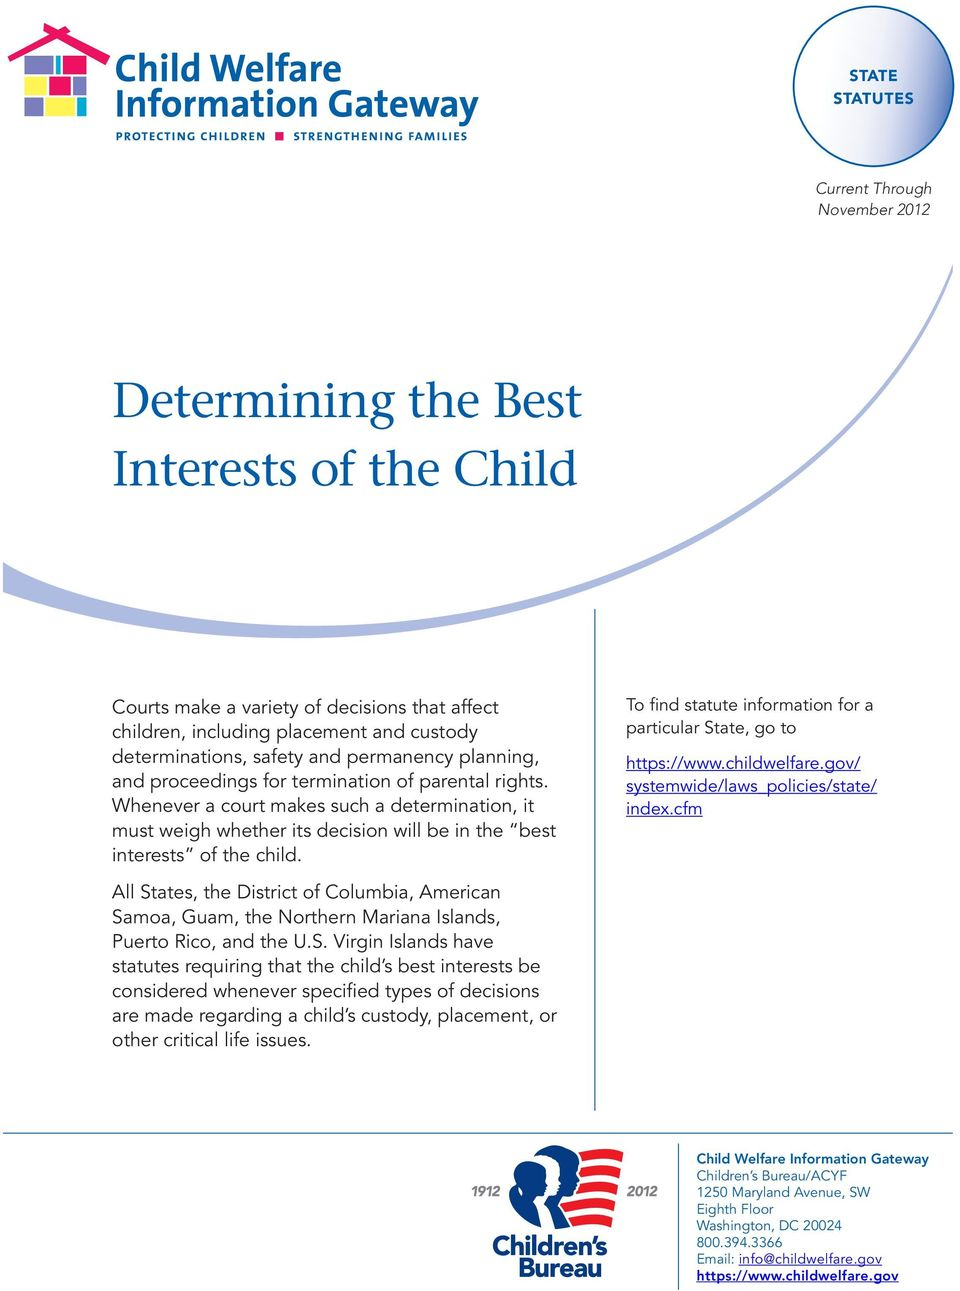 Whenever a court makes such a determination, it must weigh whether its decision will be in the best interests of the child.